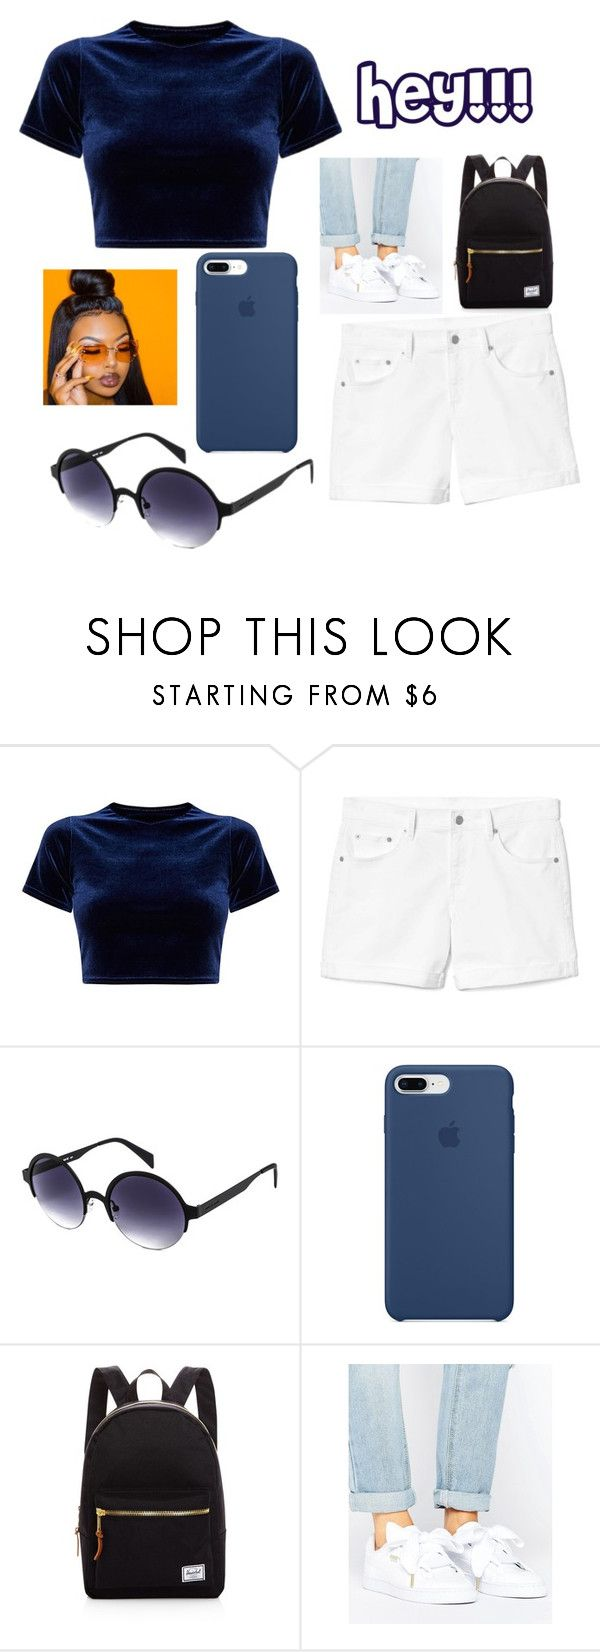 """How u doin😍😍 RTD"" by queensalma ❤ liked on Polyvore featuring Gap, Italia Independent, Apple, Herschel Supply Co. and Puma"